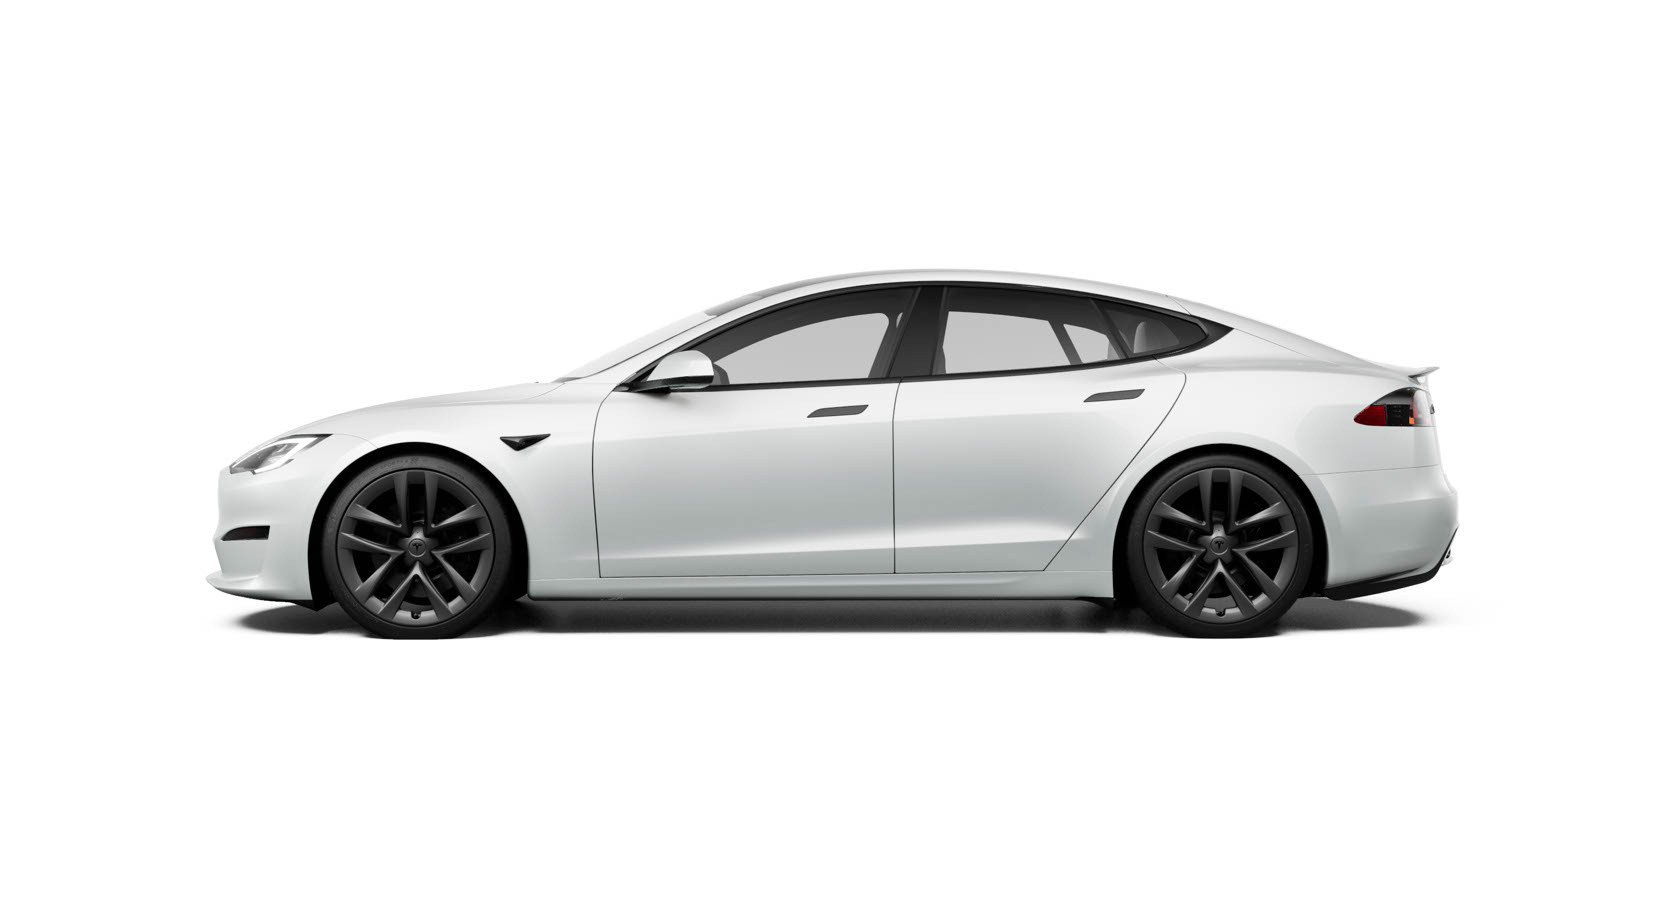 Side view of pearl white Model S